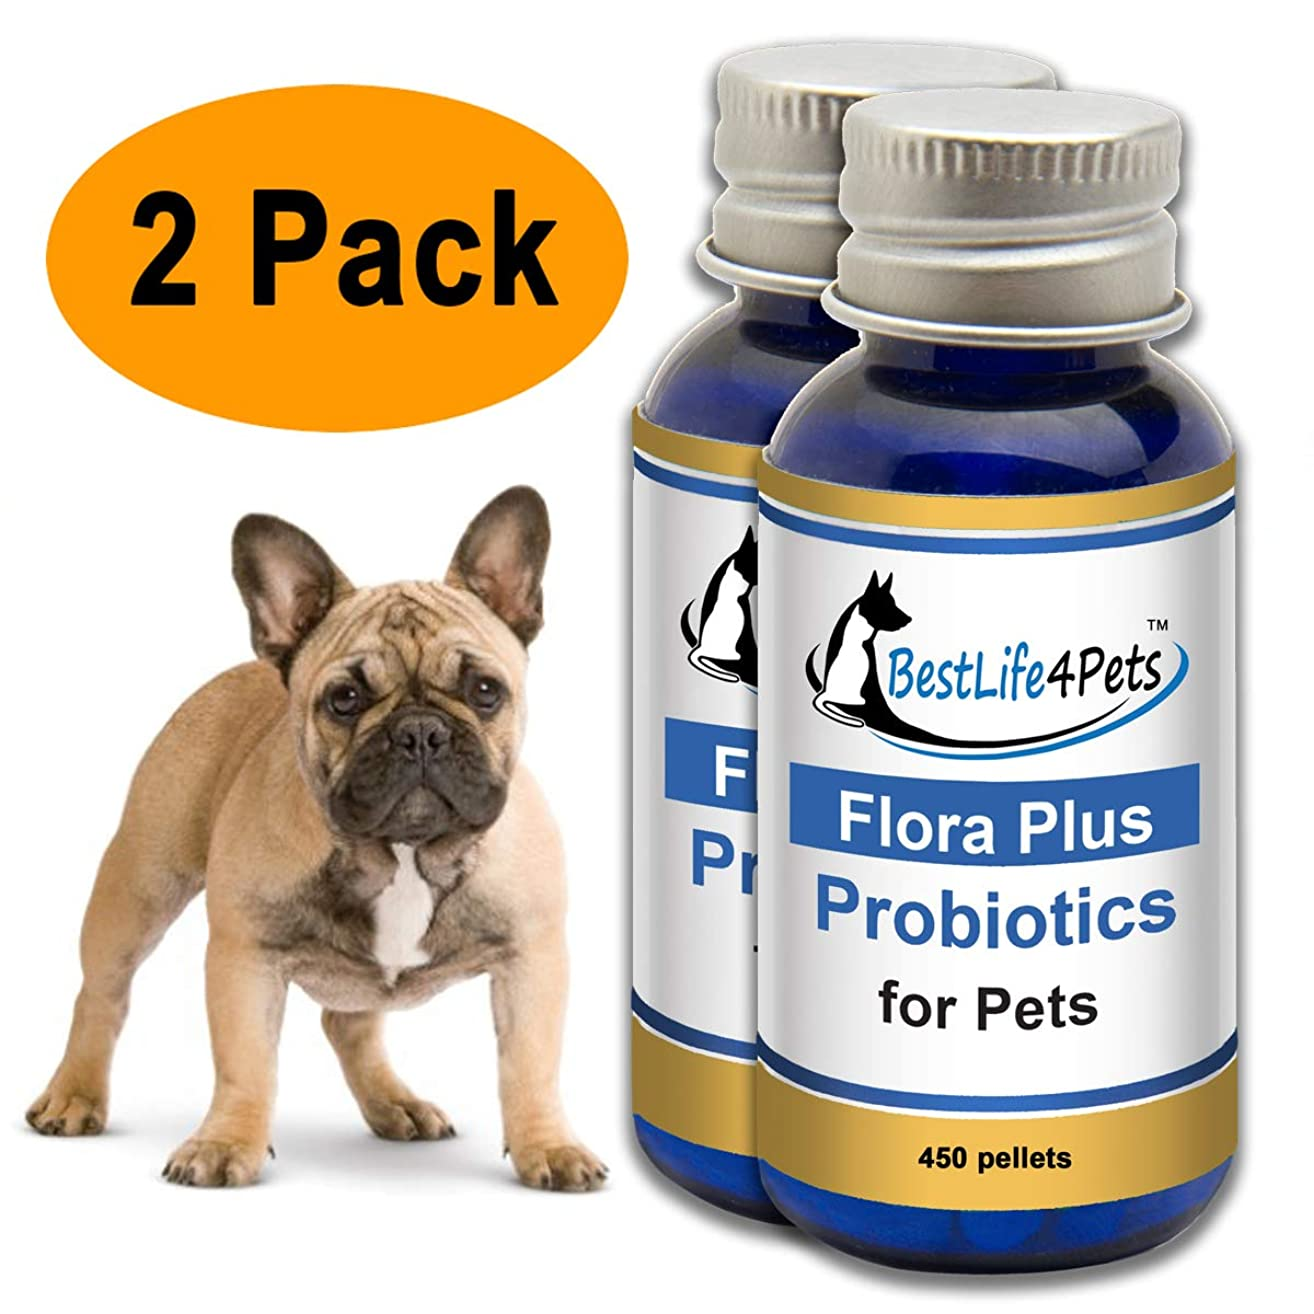 Probiotics for Dogs and Cats; Promotes Healthy Flora to Boost Your Pets Immune System Function, Improve Digestion, Relieve Diarrhea and Gas. Also Helps to Calm Skin Allergies and Itching